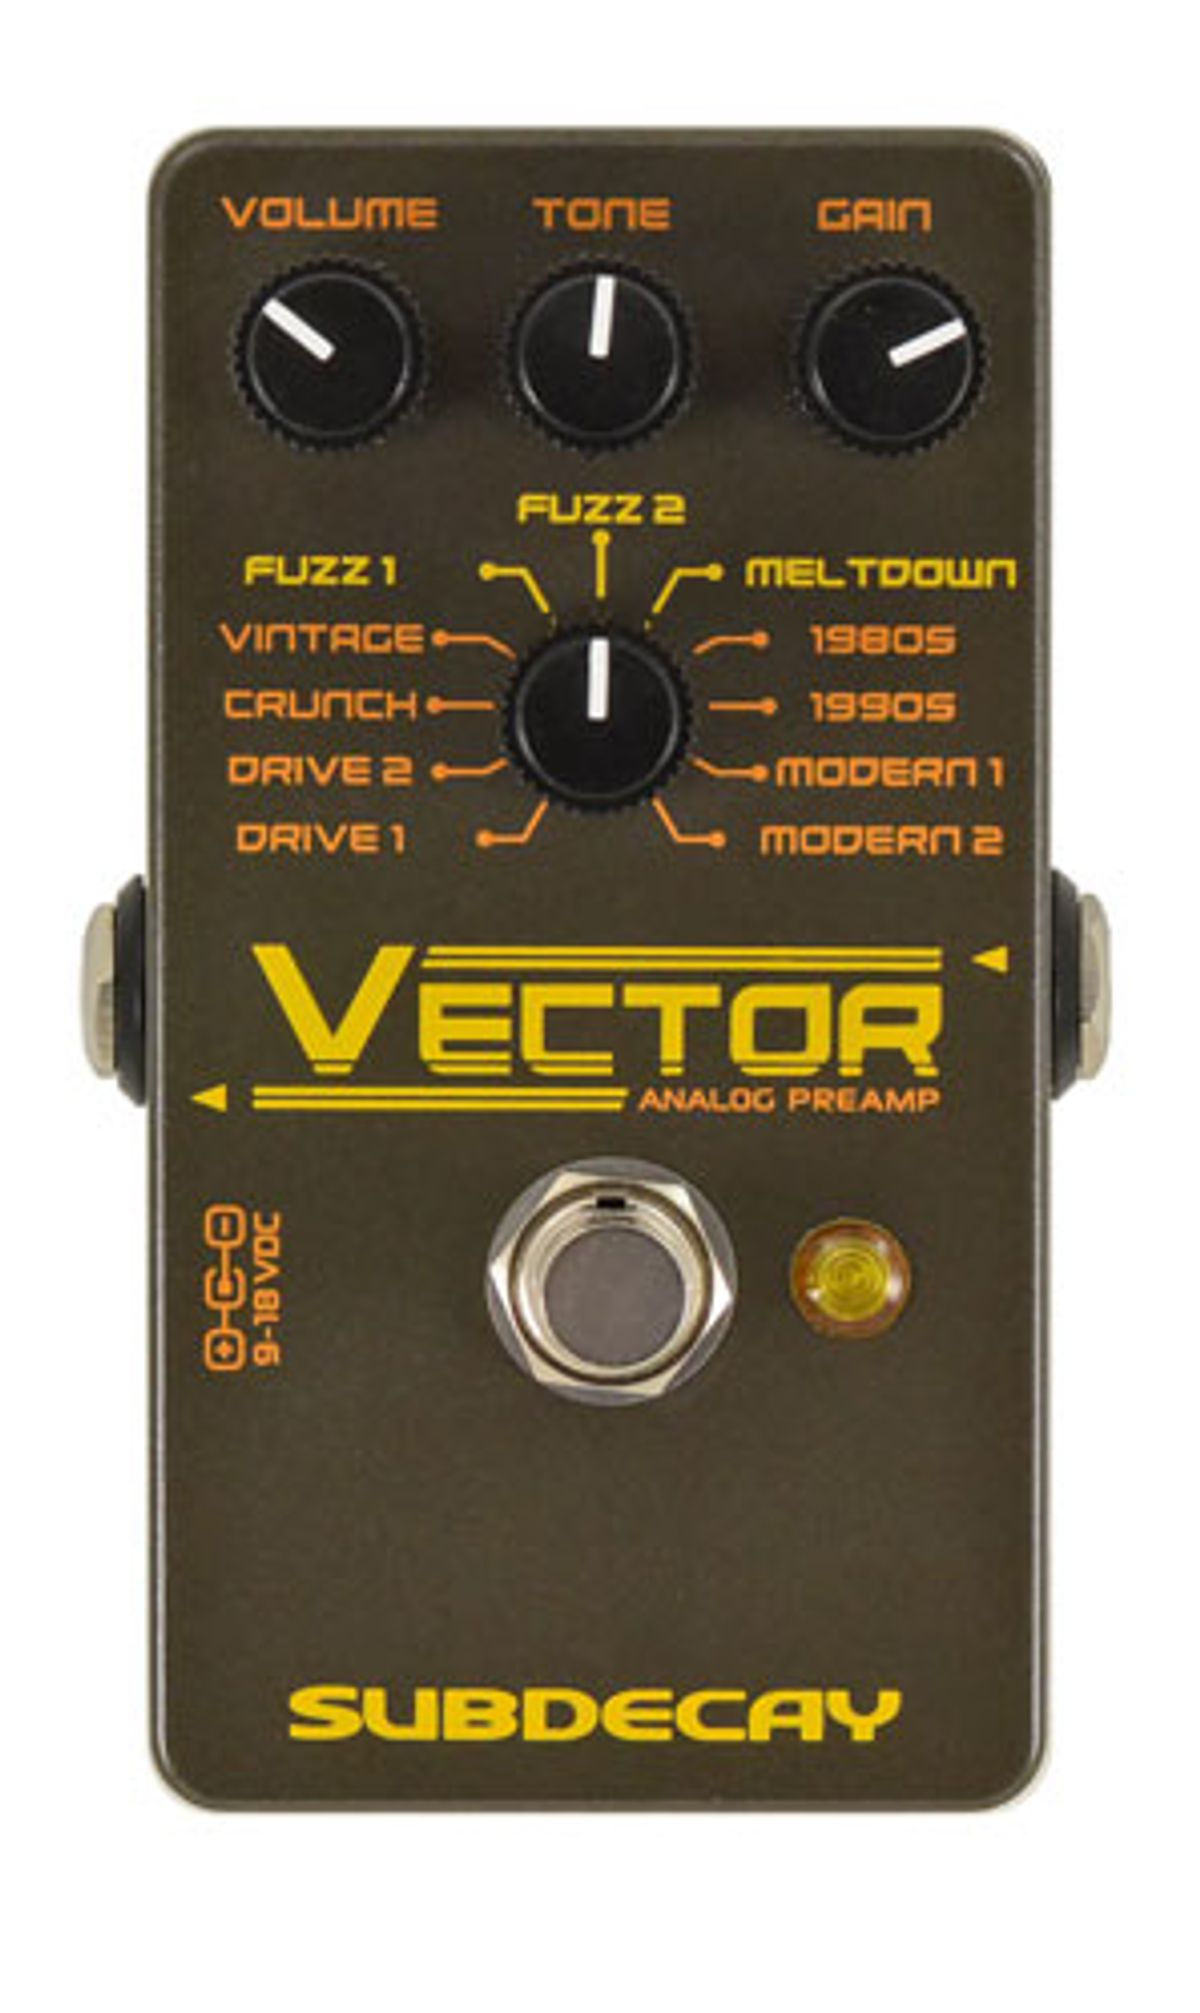 Subdecay Launches the Vector Preamp